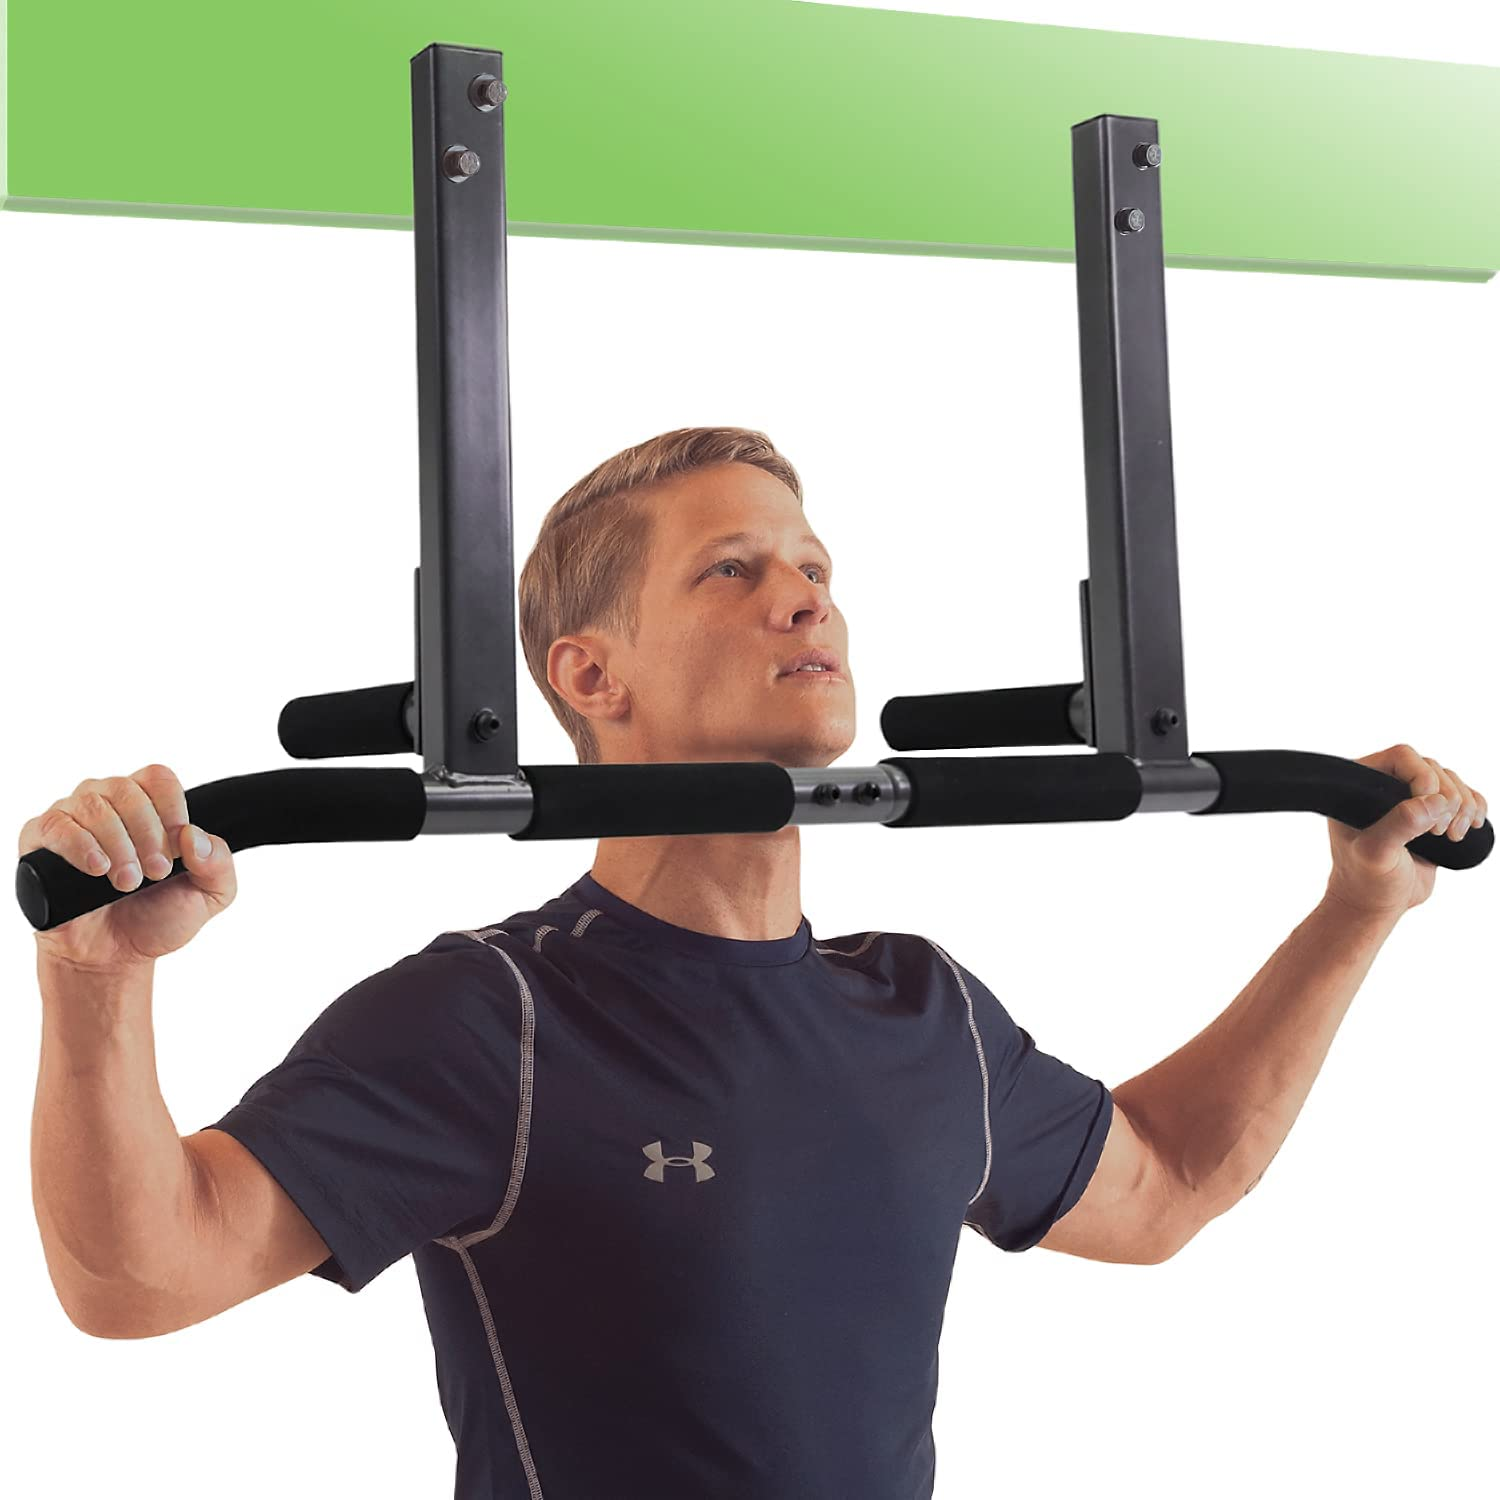 Joist Mount Pull Up Bar Product Bundles Body OFFicial store Press Ultimate by Direct store